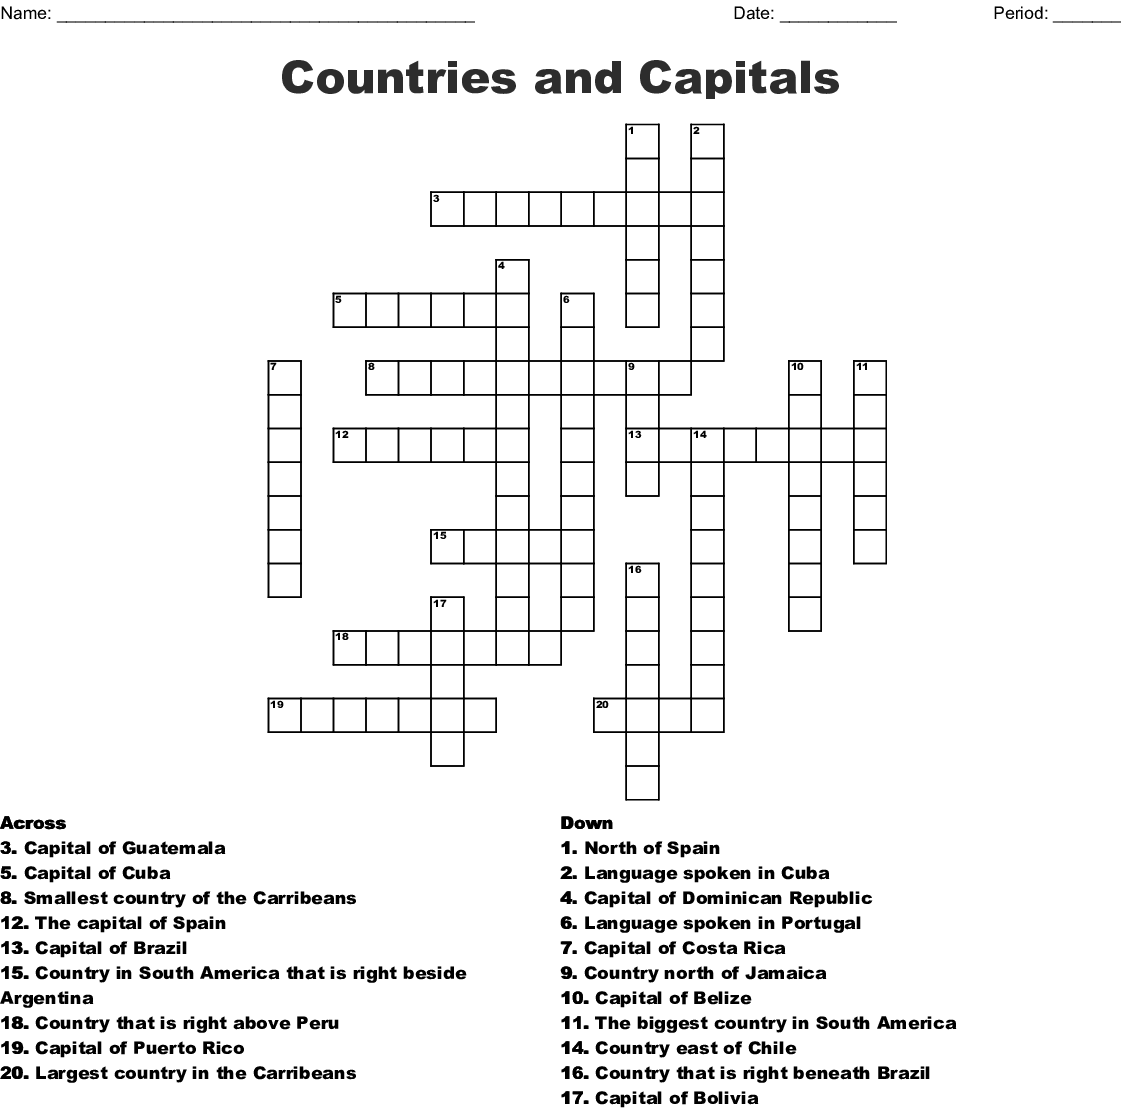 Countries And Capitals Crossword